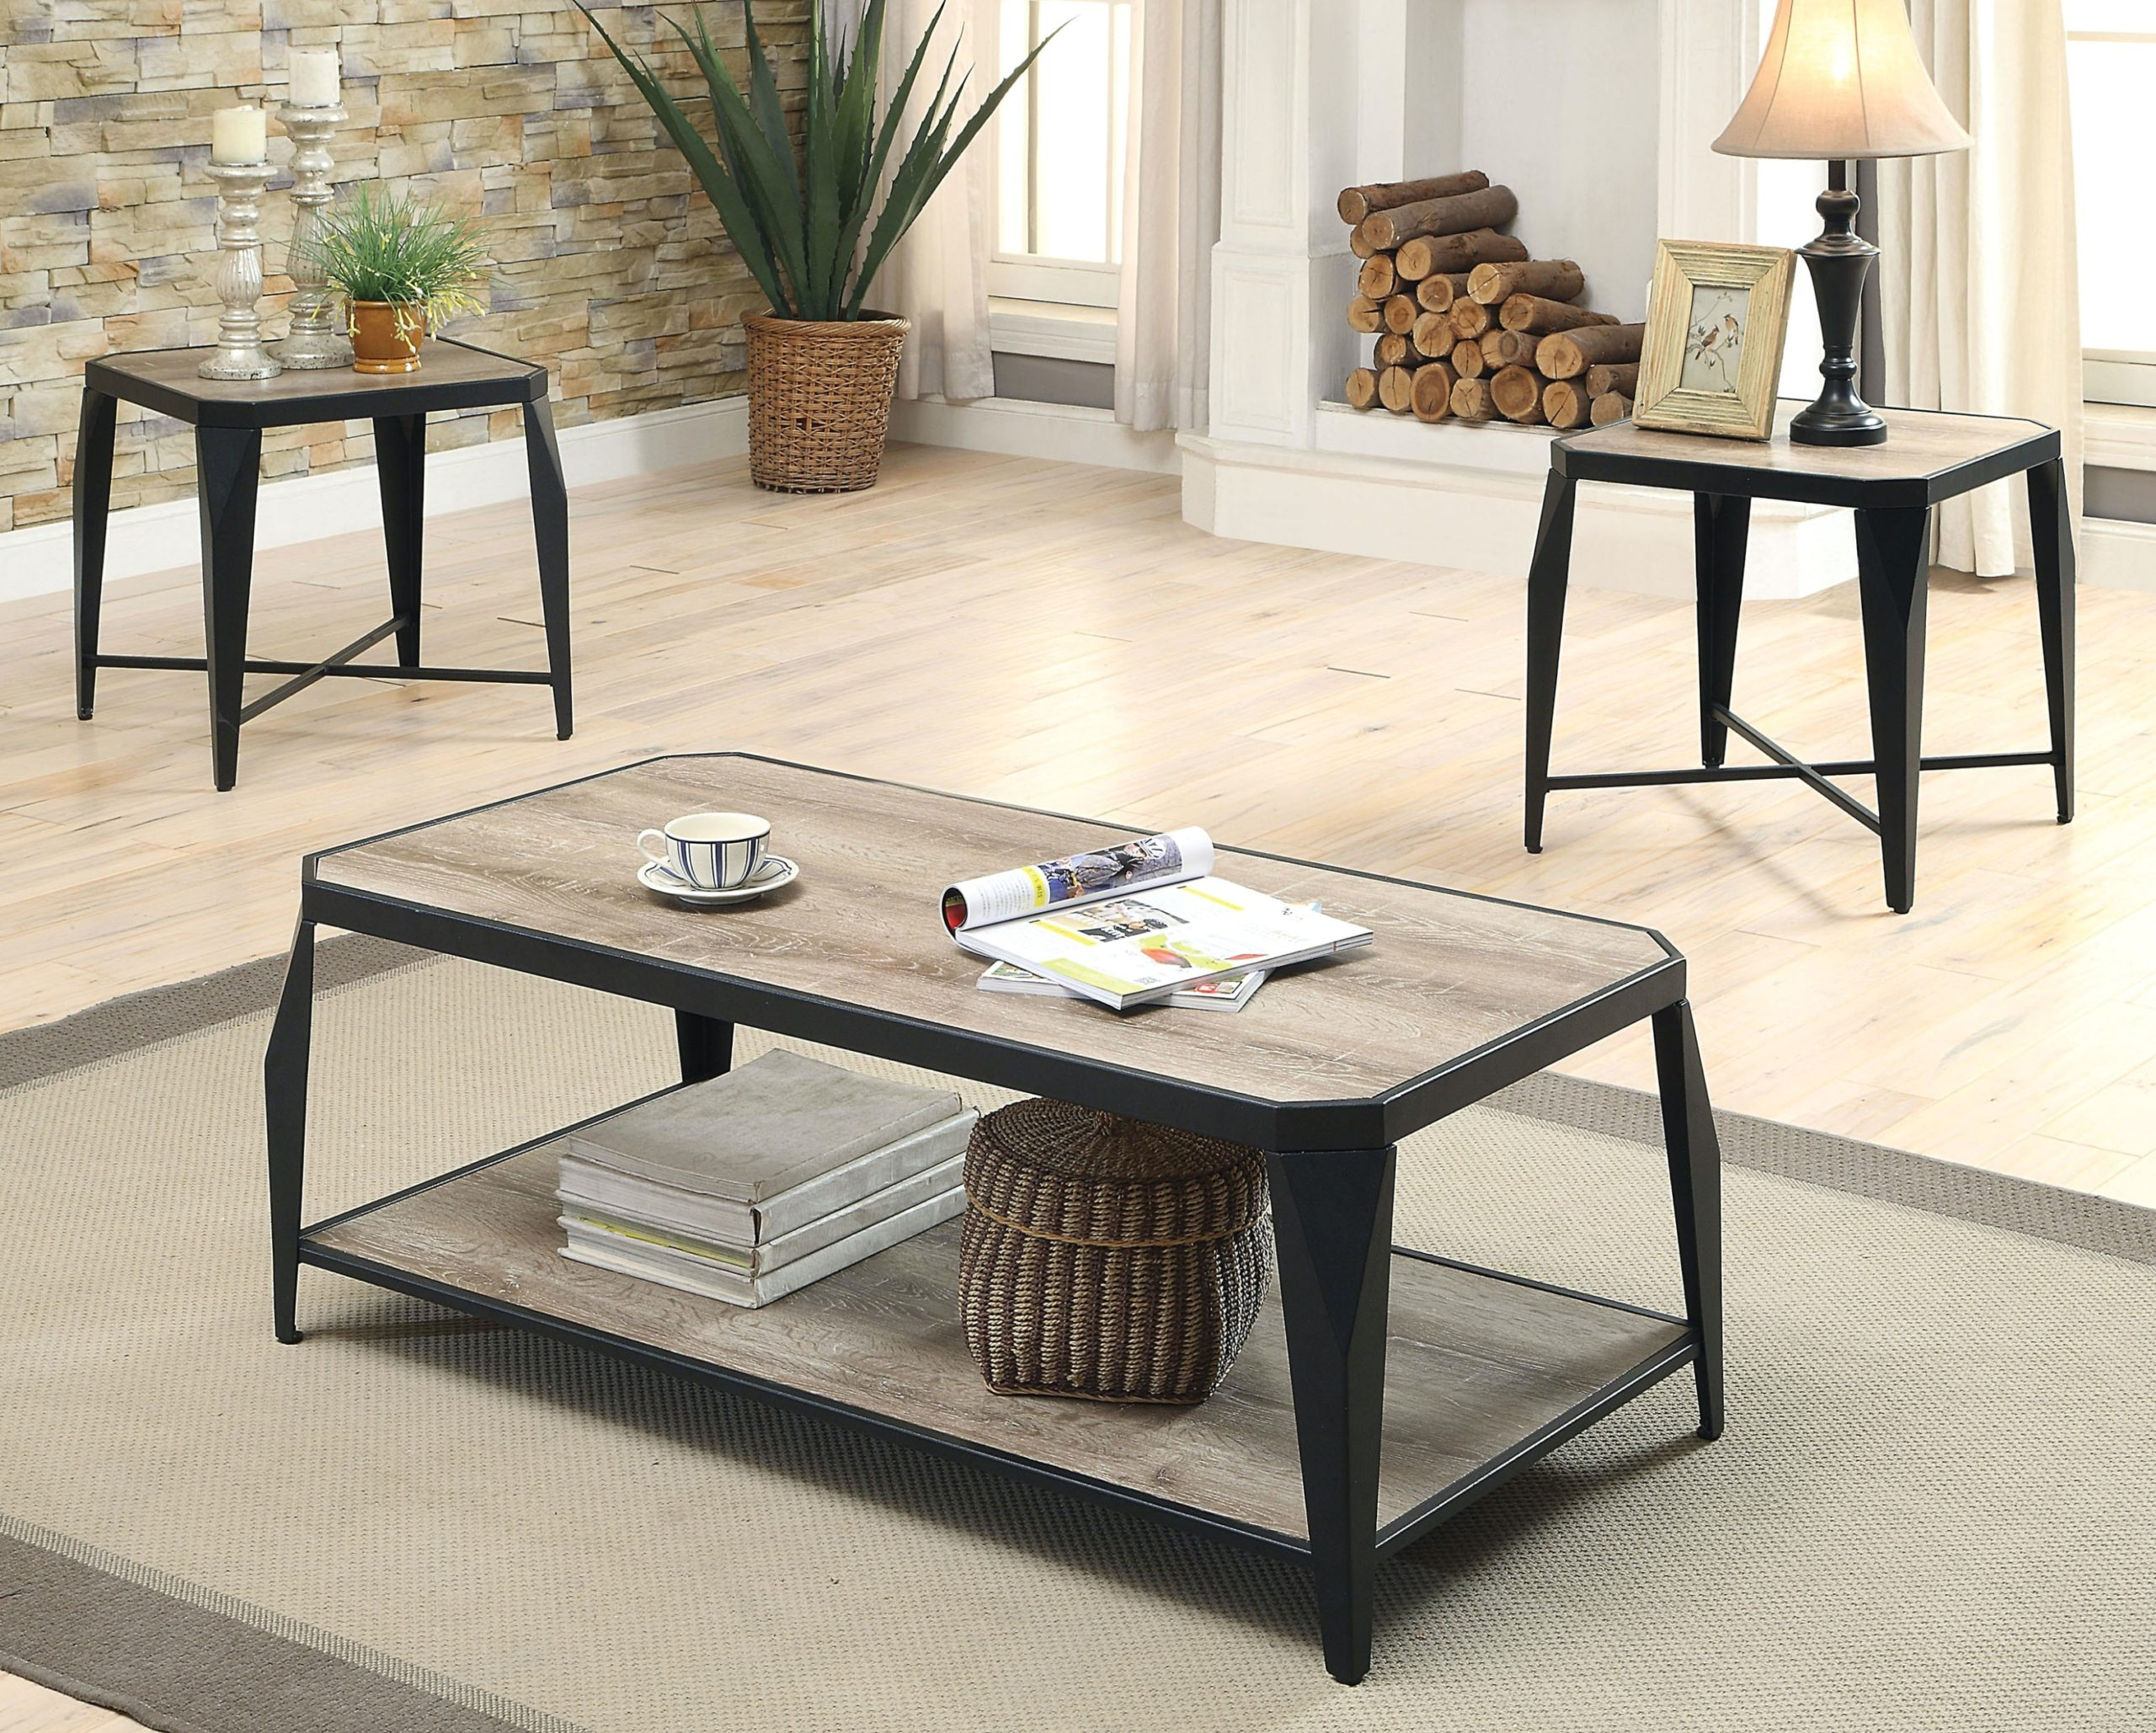 14 Piece Coffee and End Table Set - living room 3 piece table set | living room 3 piece table set